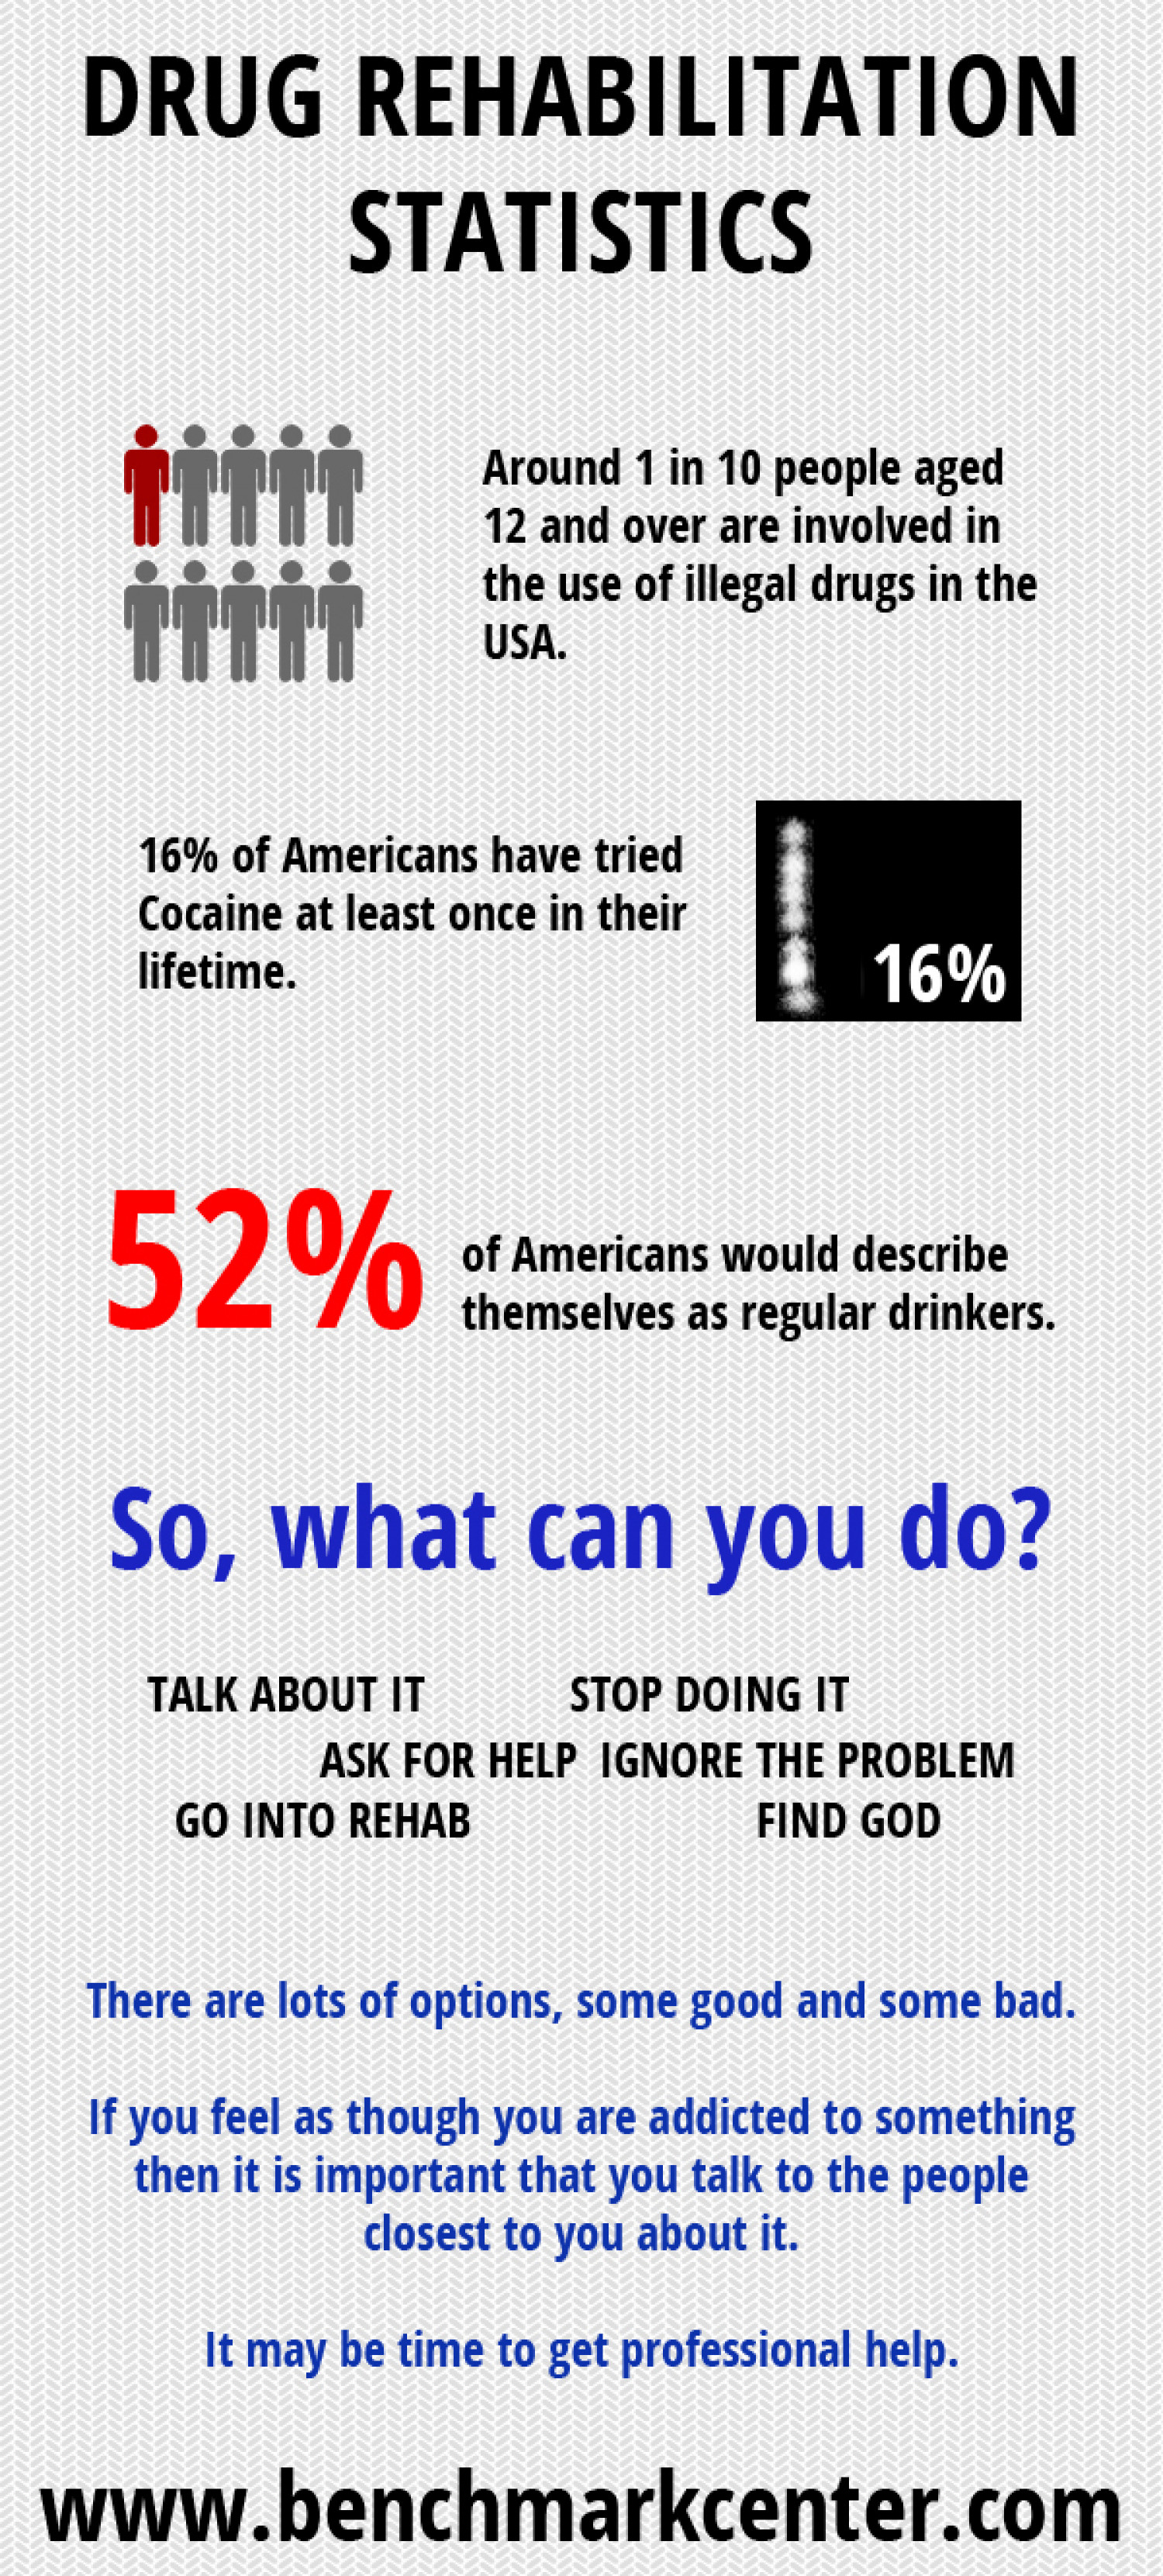 Drug Rehabilitation Statistics Infographic